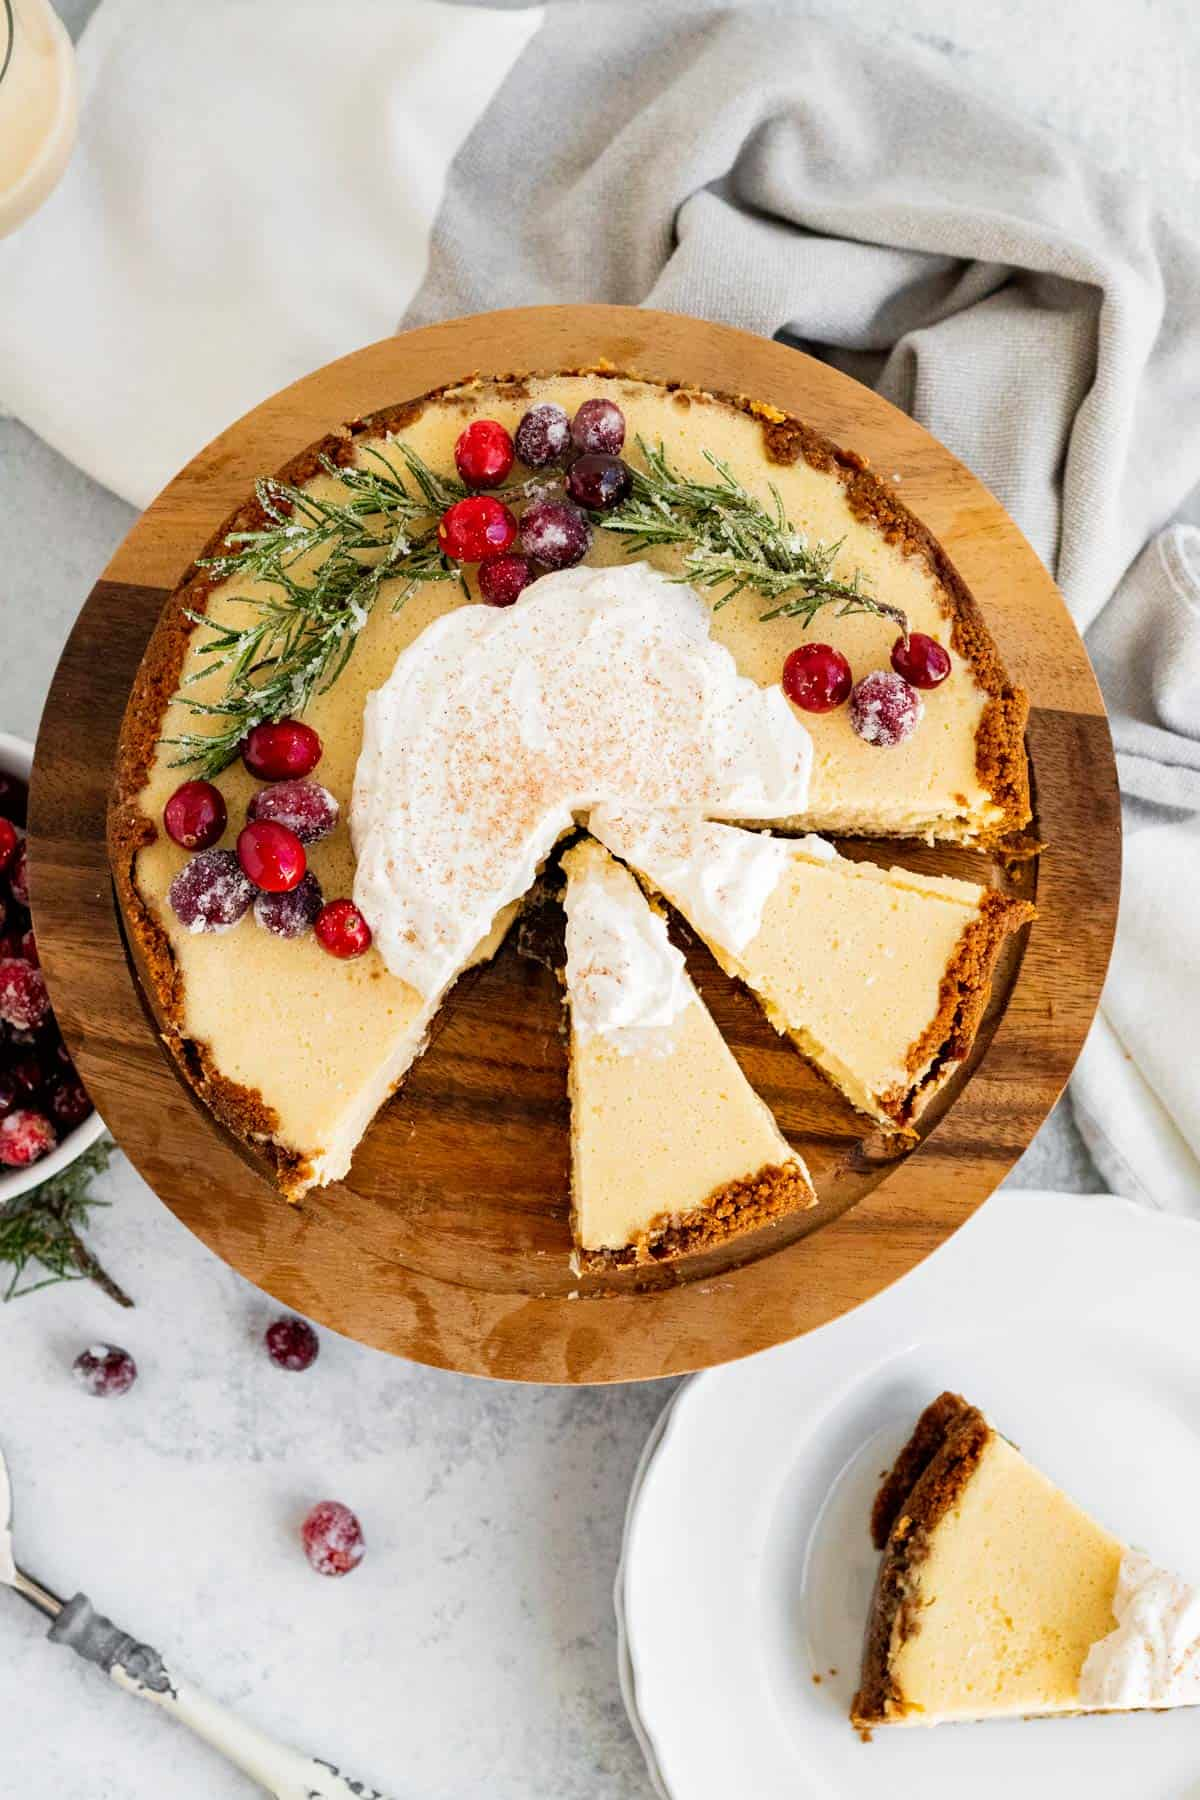 overhead view of an eggnog cheesecake decorated with cranberries and rosemary and 2 slices sliced on a wood cake stand